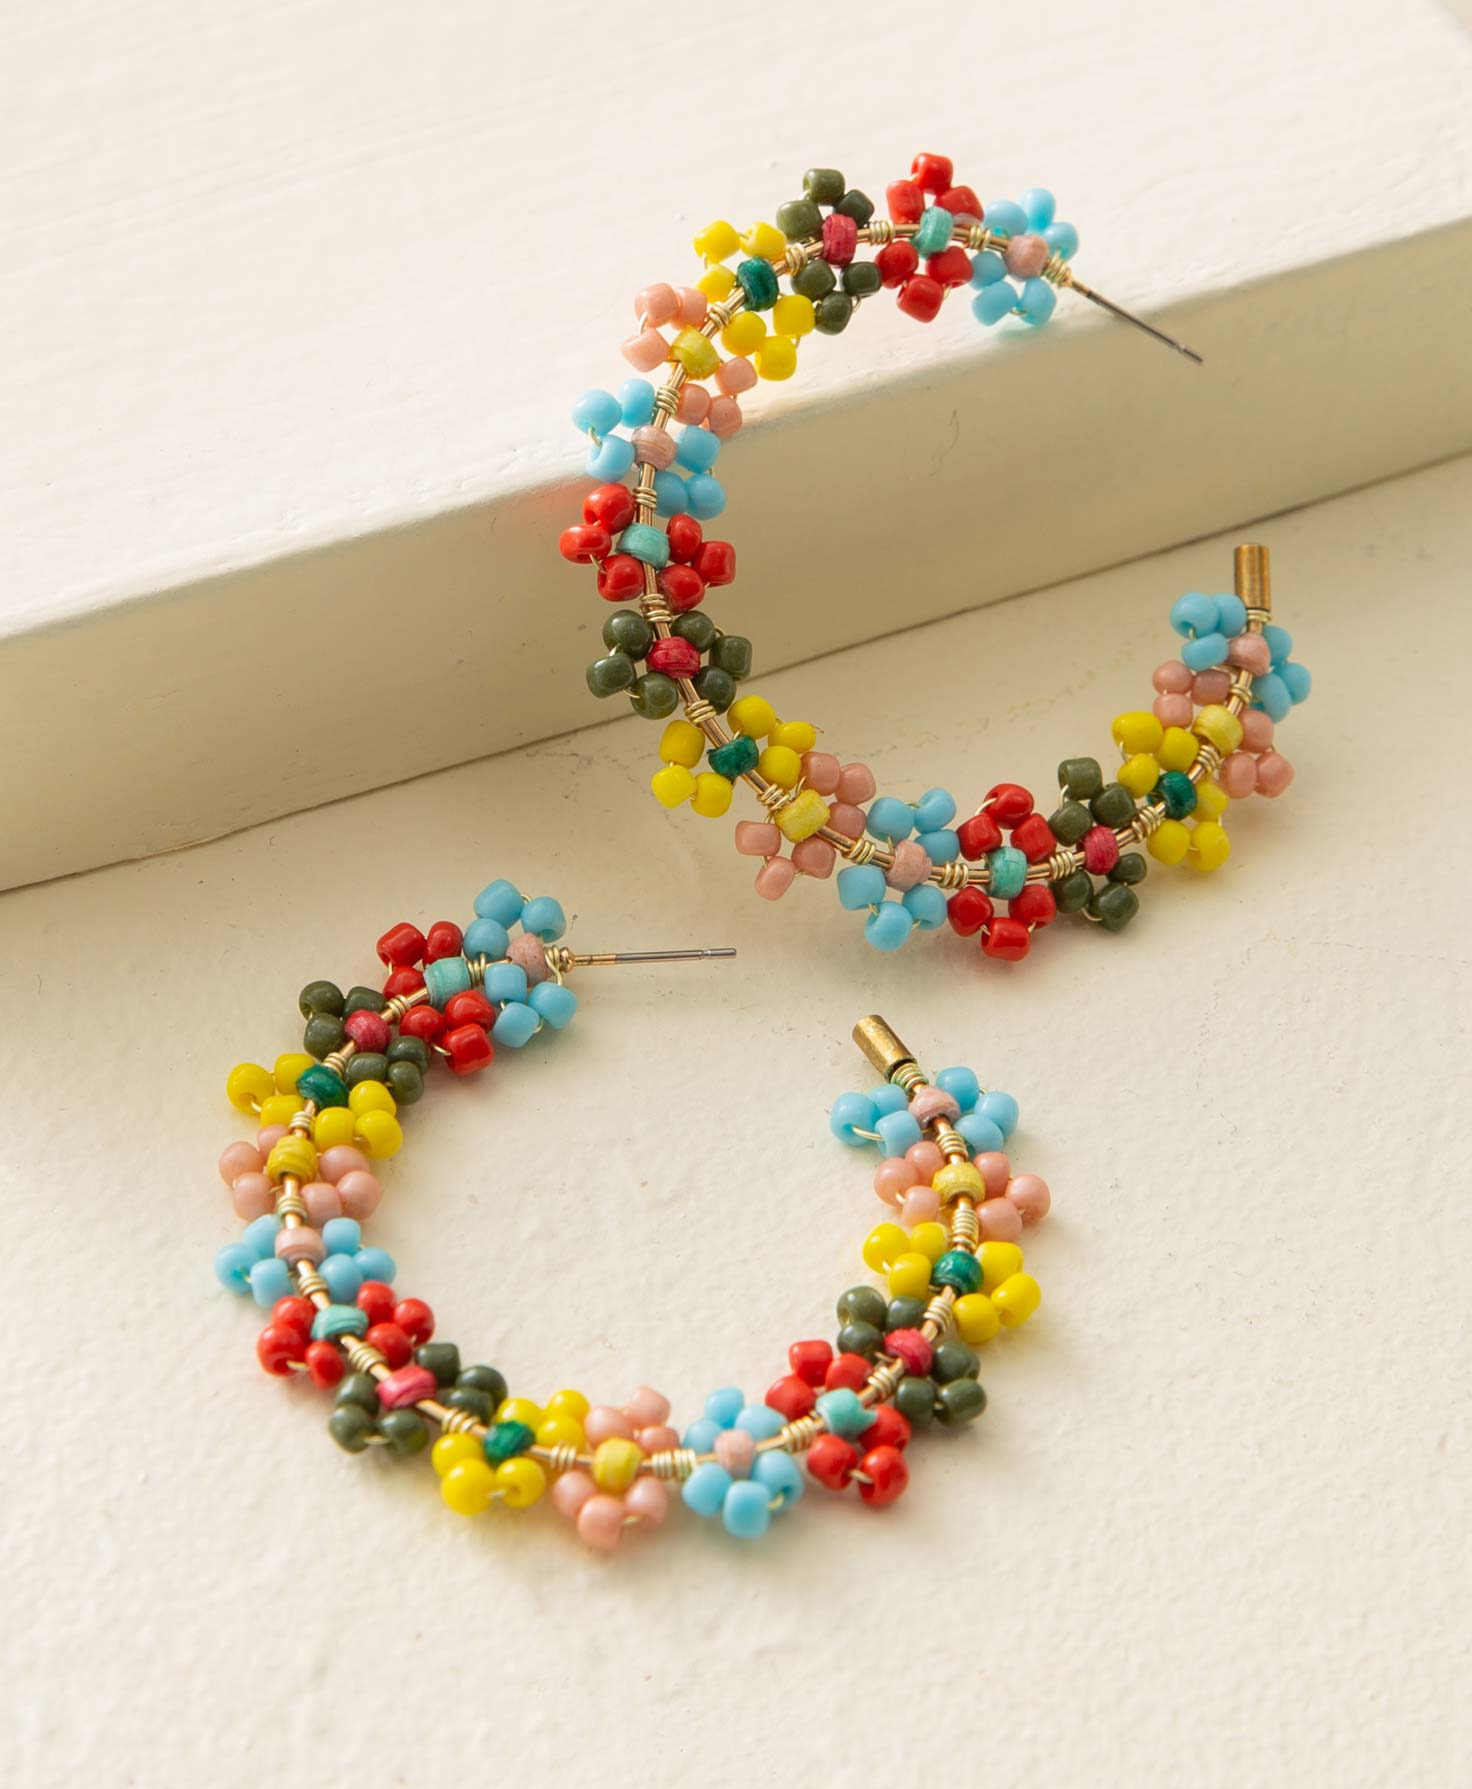 The Lantana Hoops lay against a cream backdrop. They are gold hoop earrings with flower designs arranged along the entire hoop. Each flower is composed of a colored paper bead in the center, with seed beads in a contrasting color forming the surrounding petals. The bead colors include olive, red, aqua, blush, yellow, and green. The flowers are arranged so that they lay flat along the outside of the hoop.